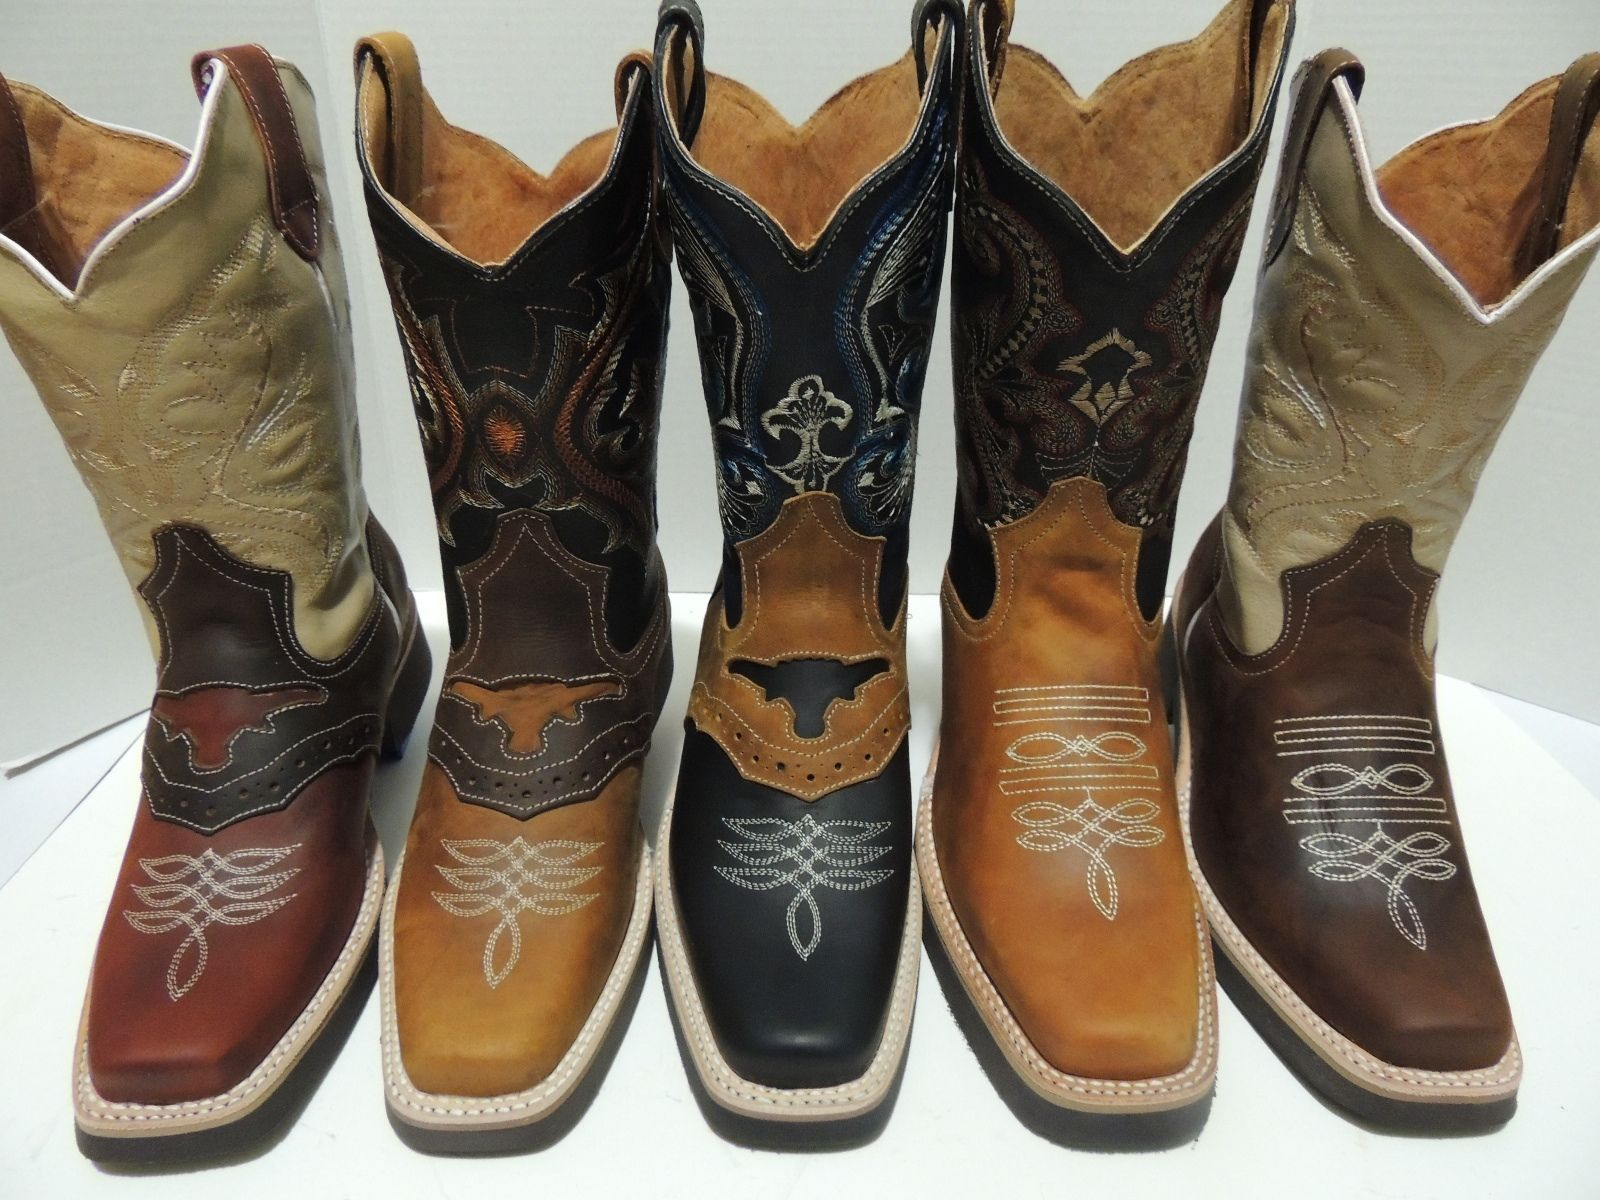 Details about MEN'S COWBOY BOOTS GENUINE COWHIDE LEATHER RODEO ...